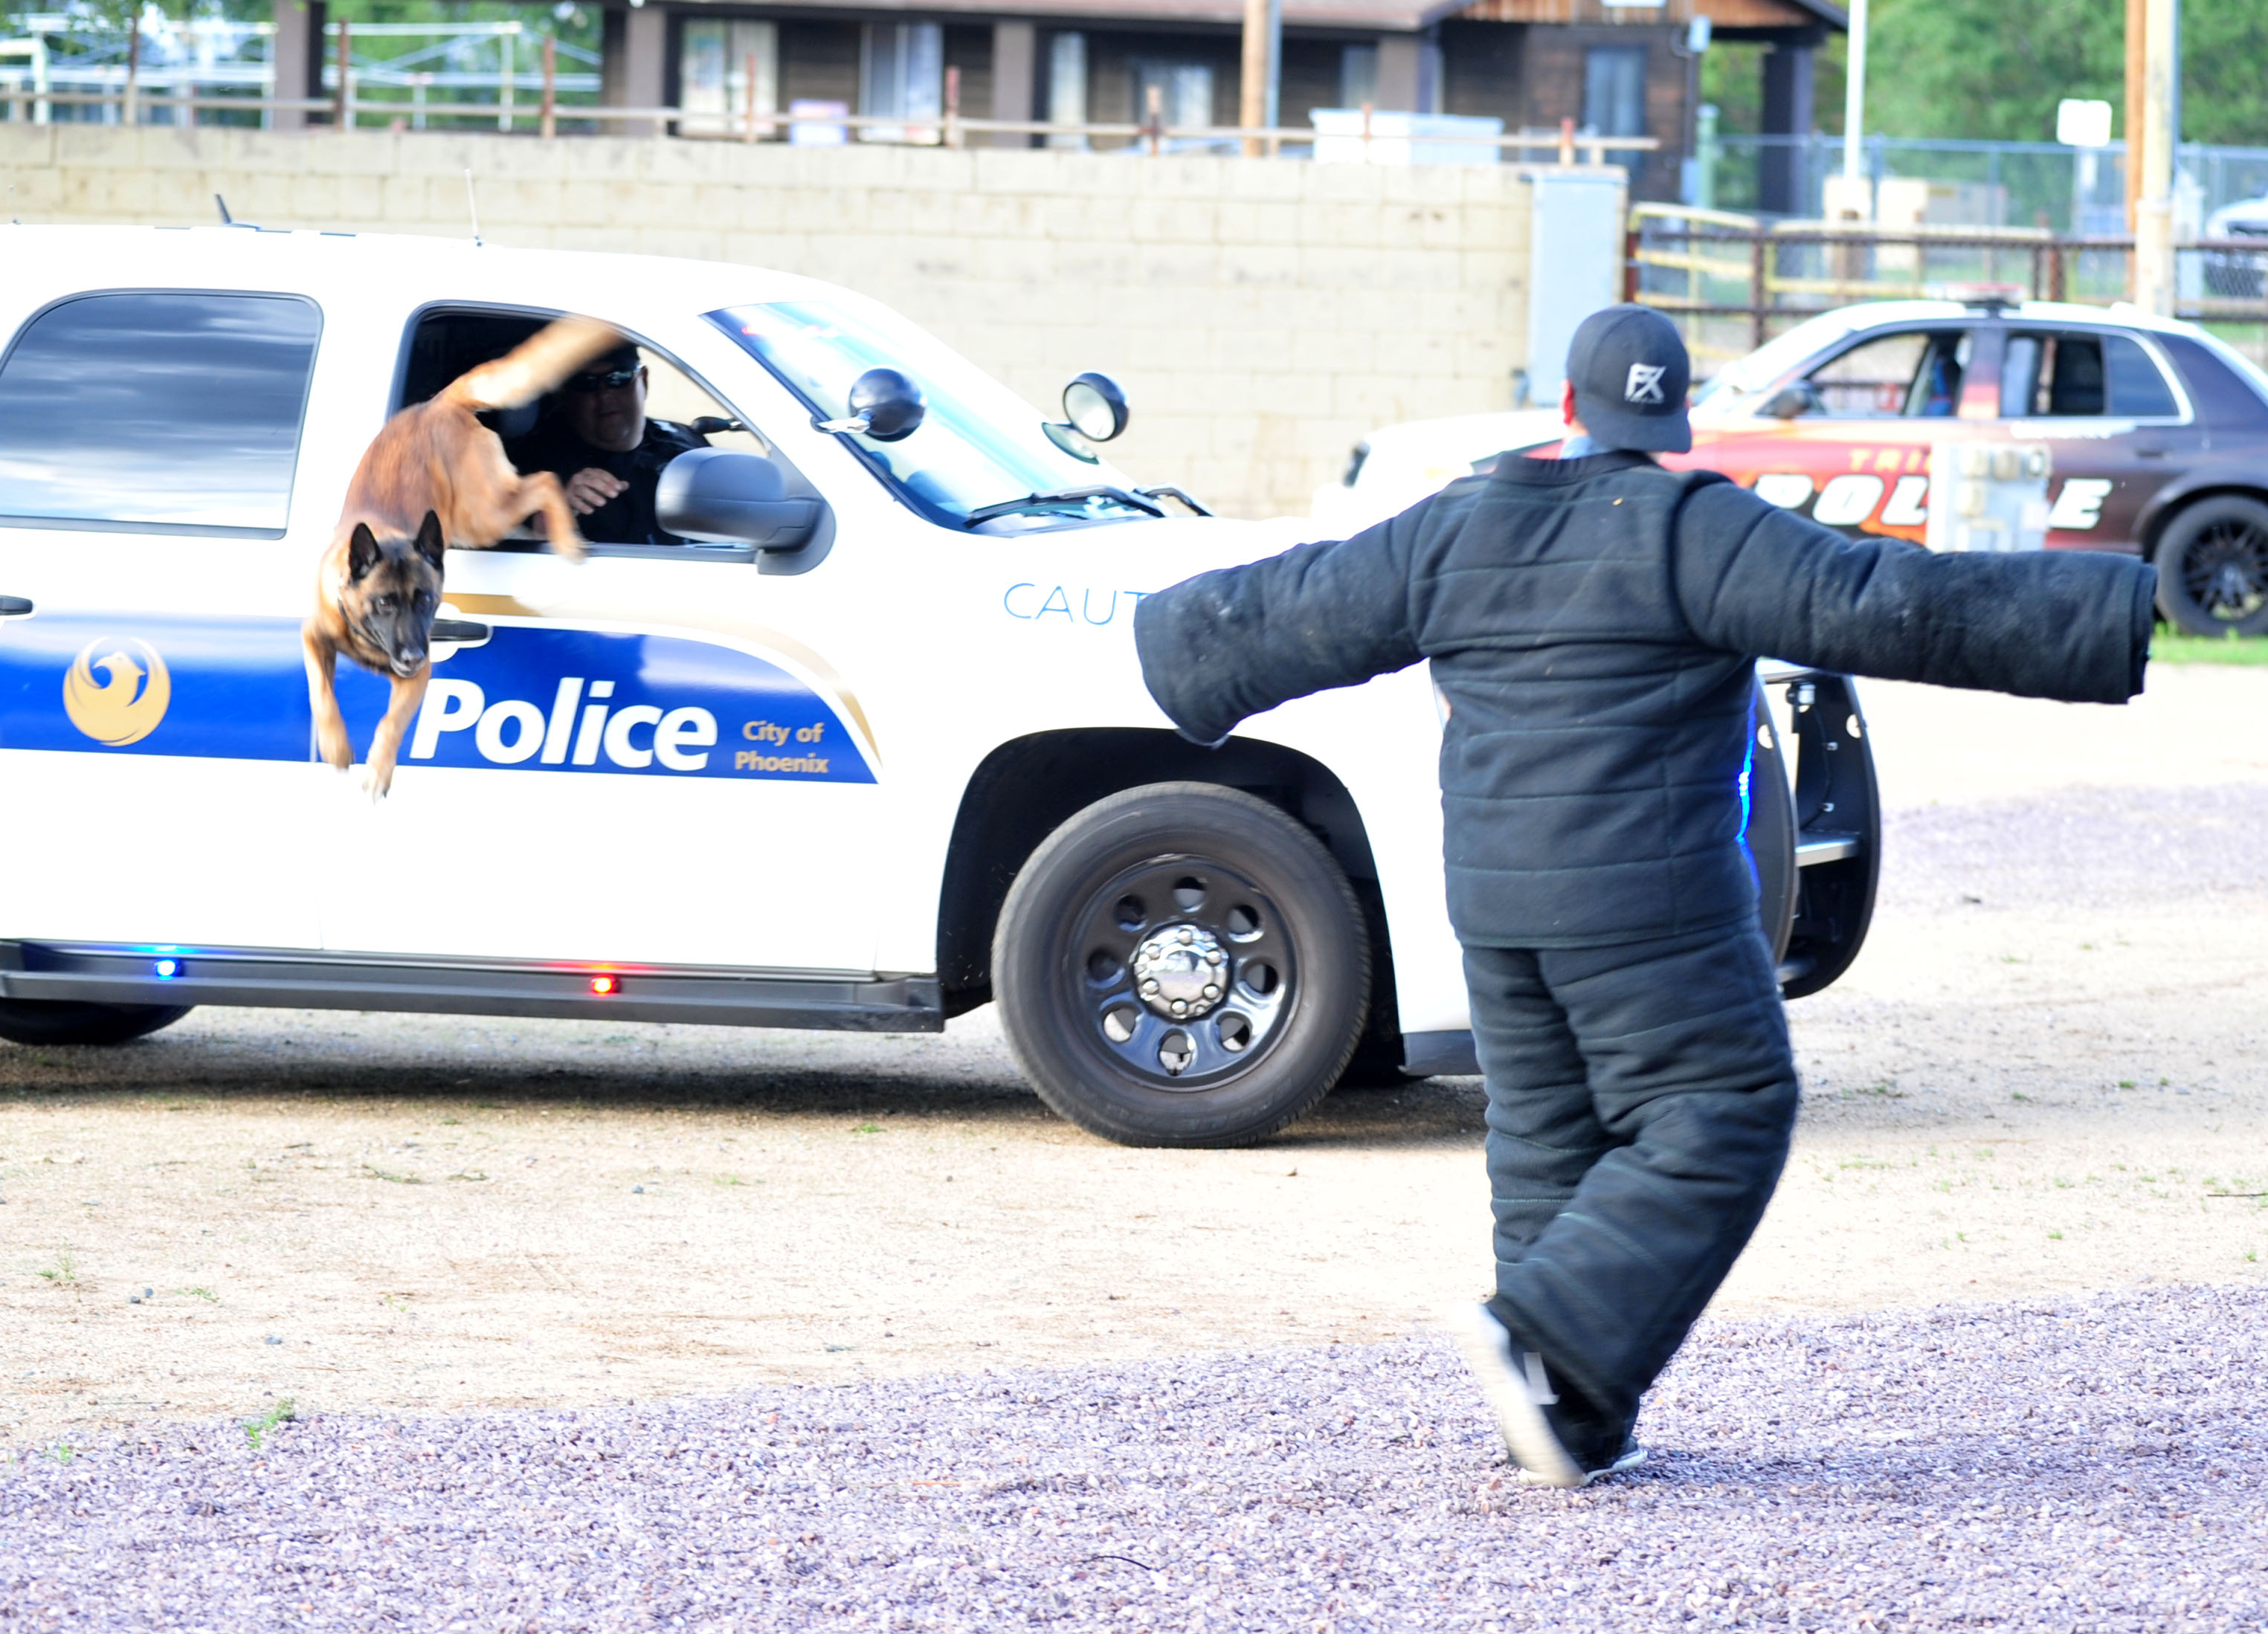 K-9 demonstration shows off skill sets of four-legged officers - The Daily Courier 1